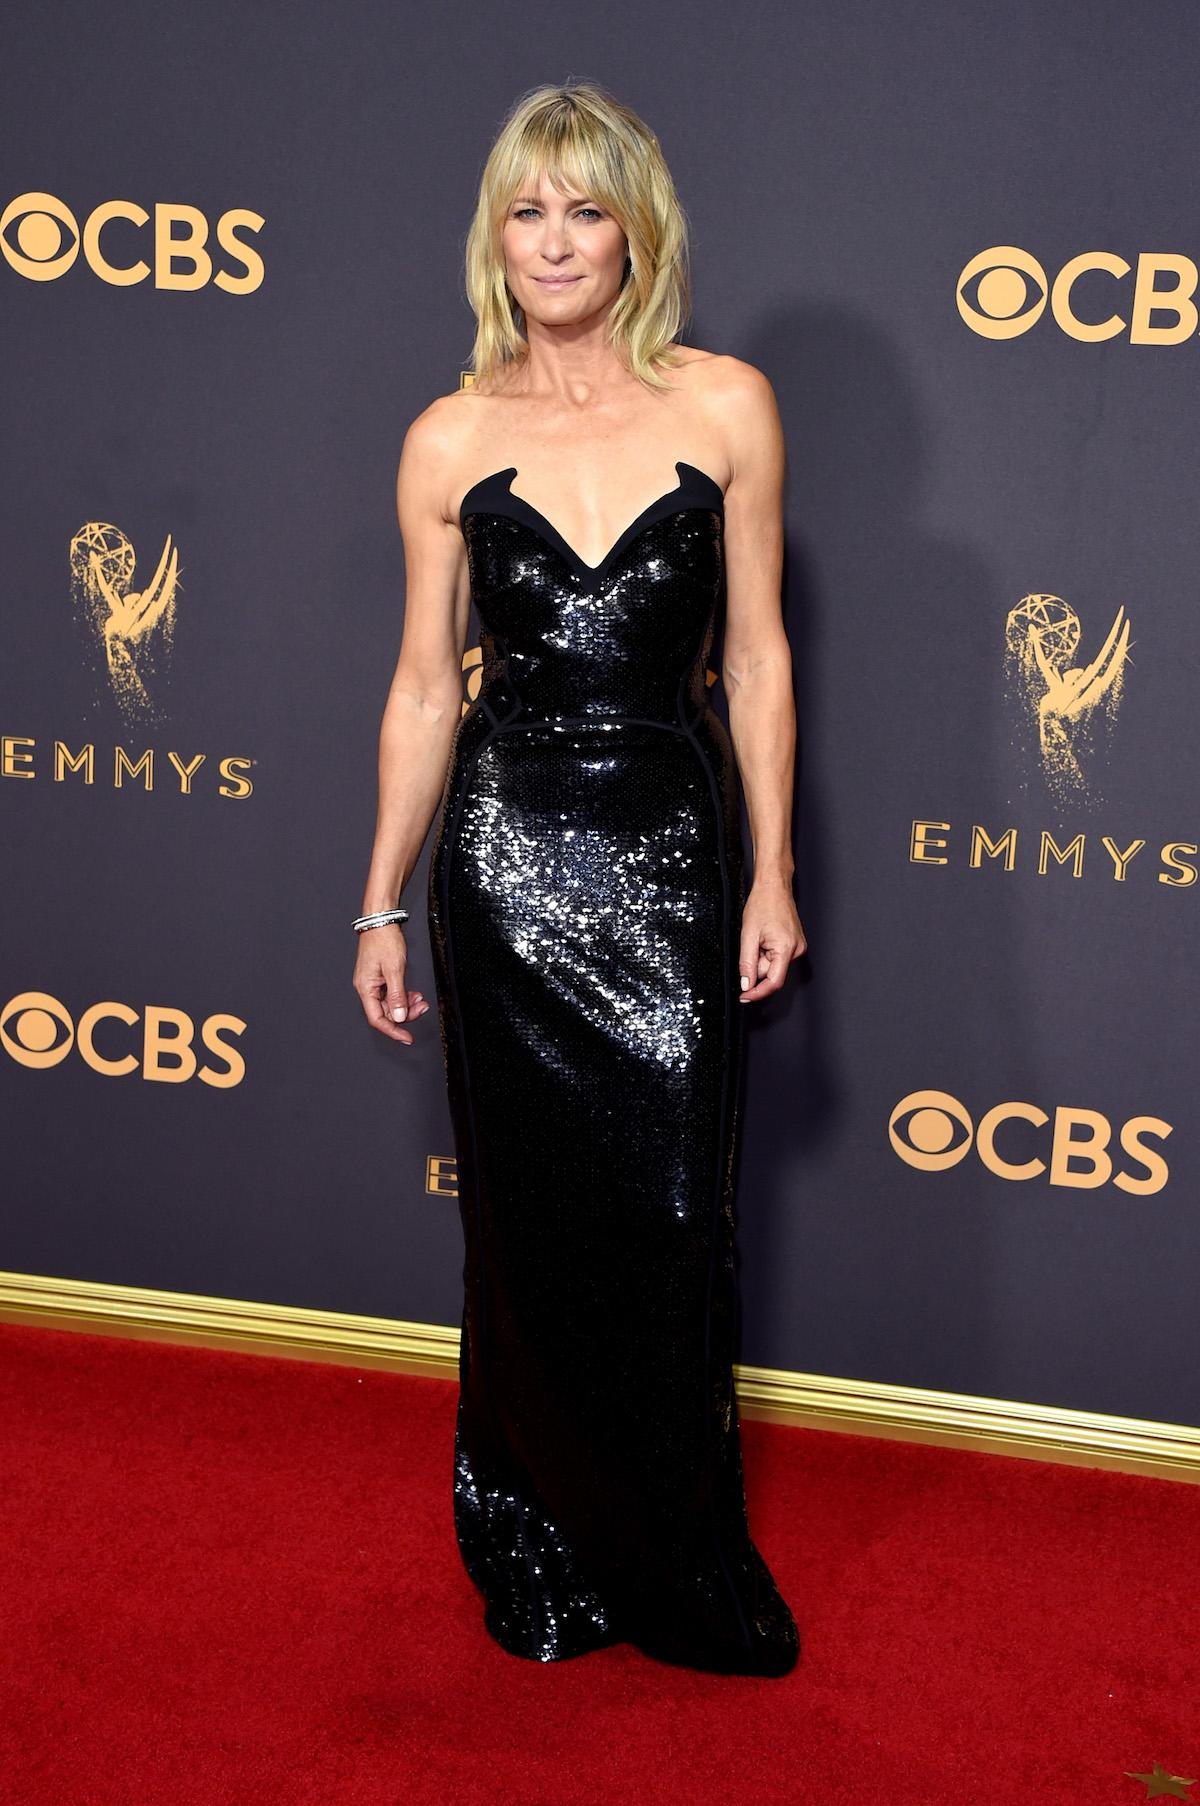 Best dressed at the 2017 Emmy Awards